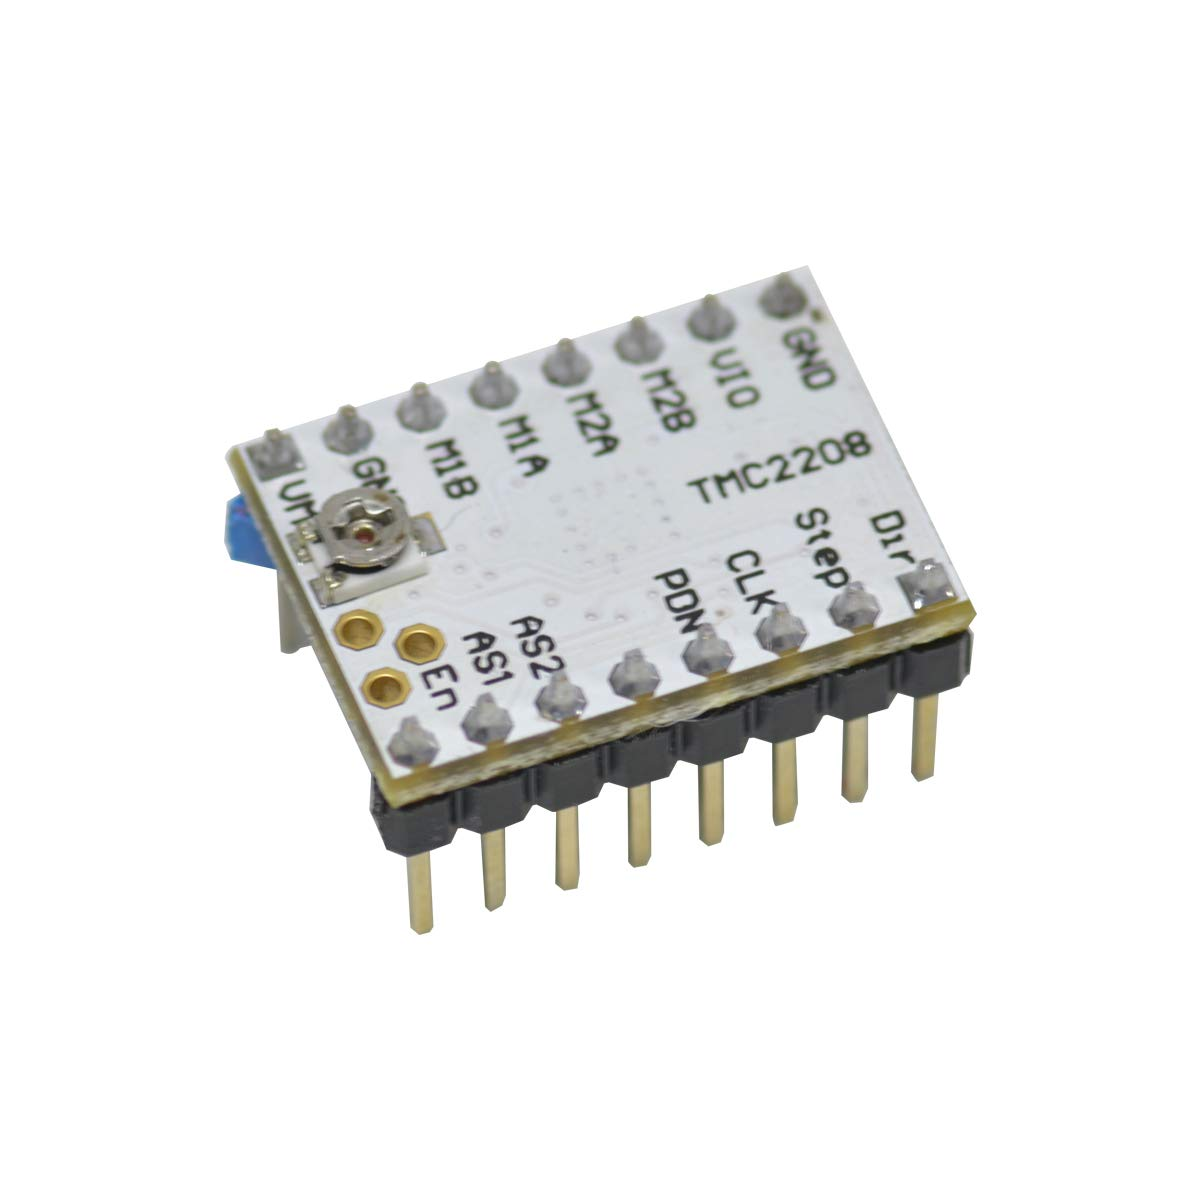 Pack of 4 GEEETECH TMC2208 Stepper Motor Driver Module Stepstick with Headsink and Screwdriver for 3D Printer Mother Boards Reprap MKS Prusa and More